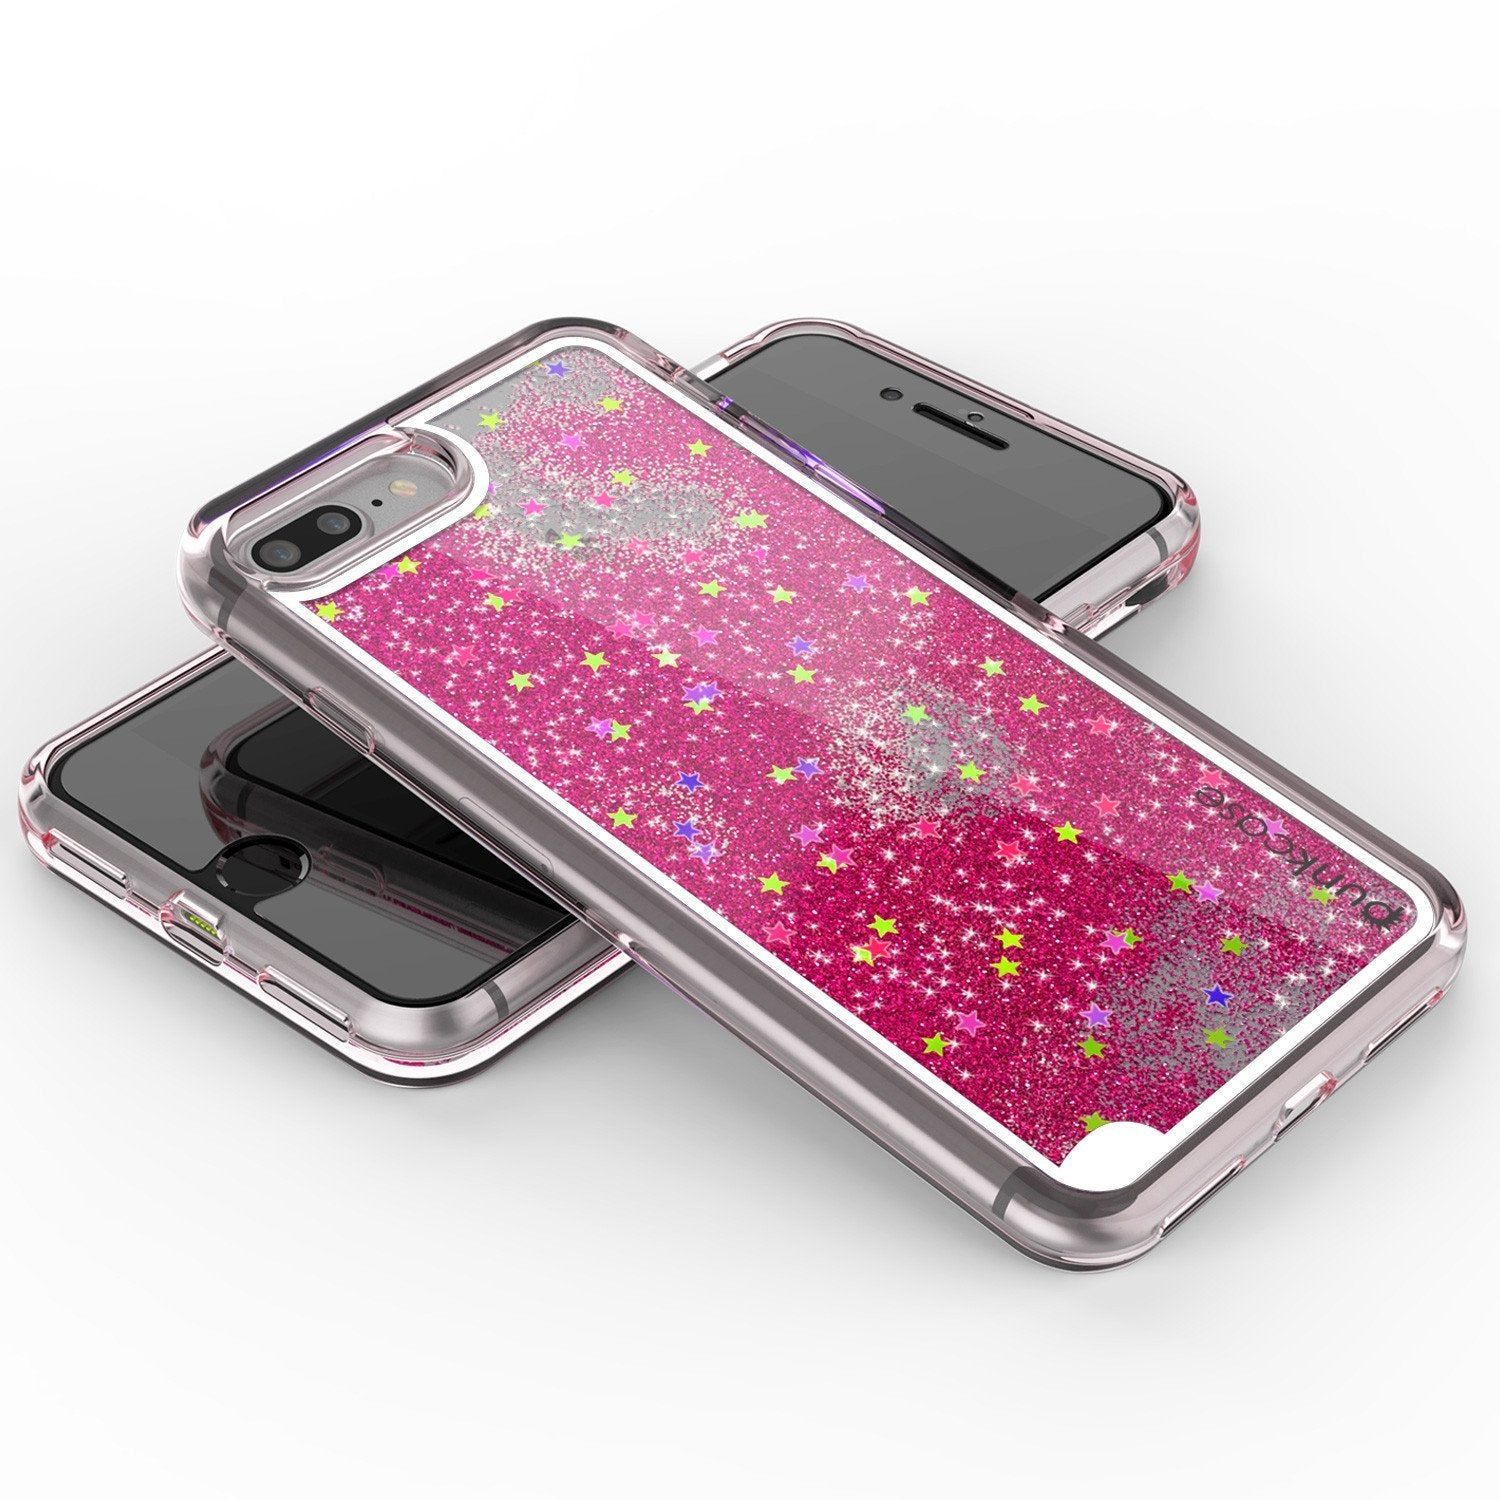 iPhone 8+ Plus Case, PunkCase LIQUID Pink Series, Protective Dual Layer Floating Glitter Cover